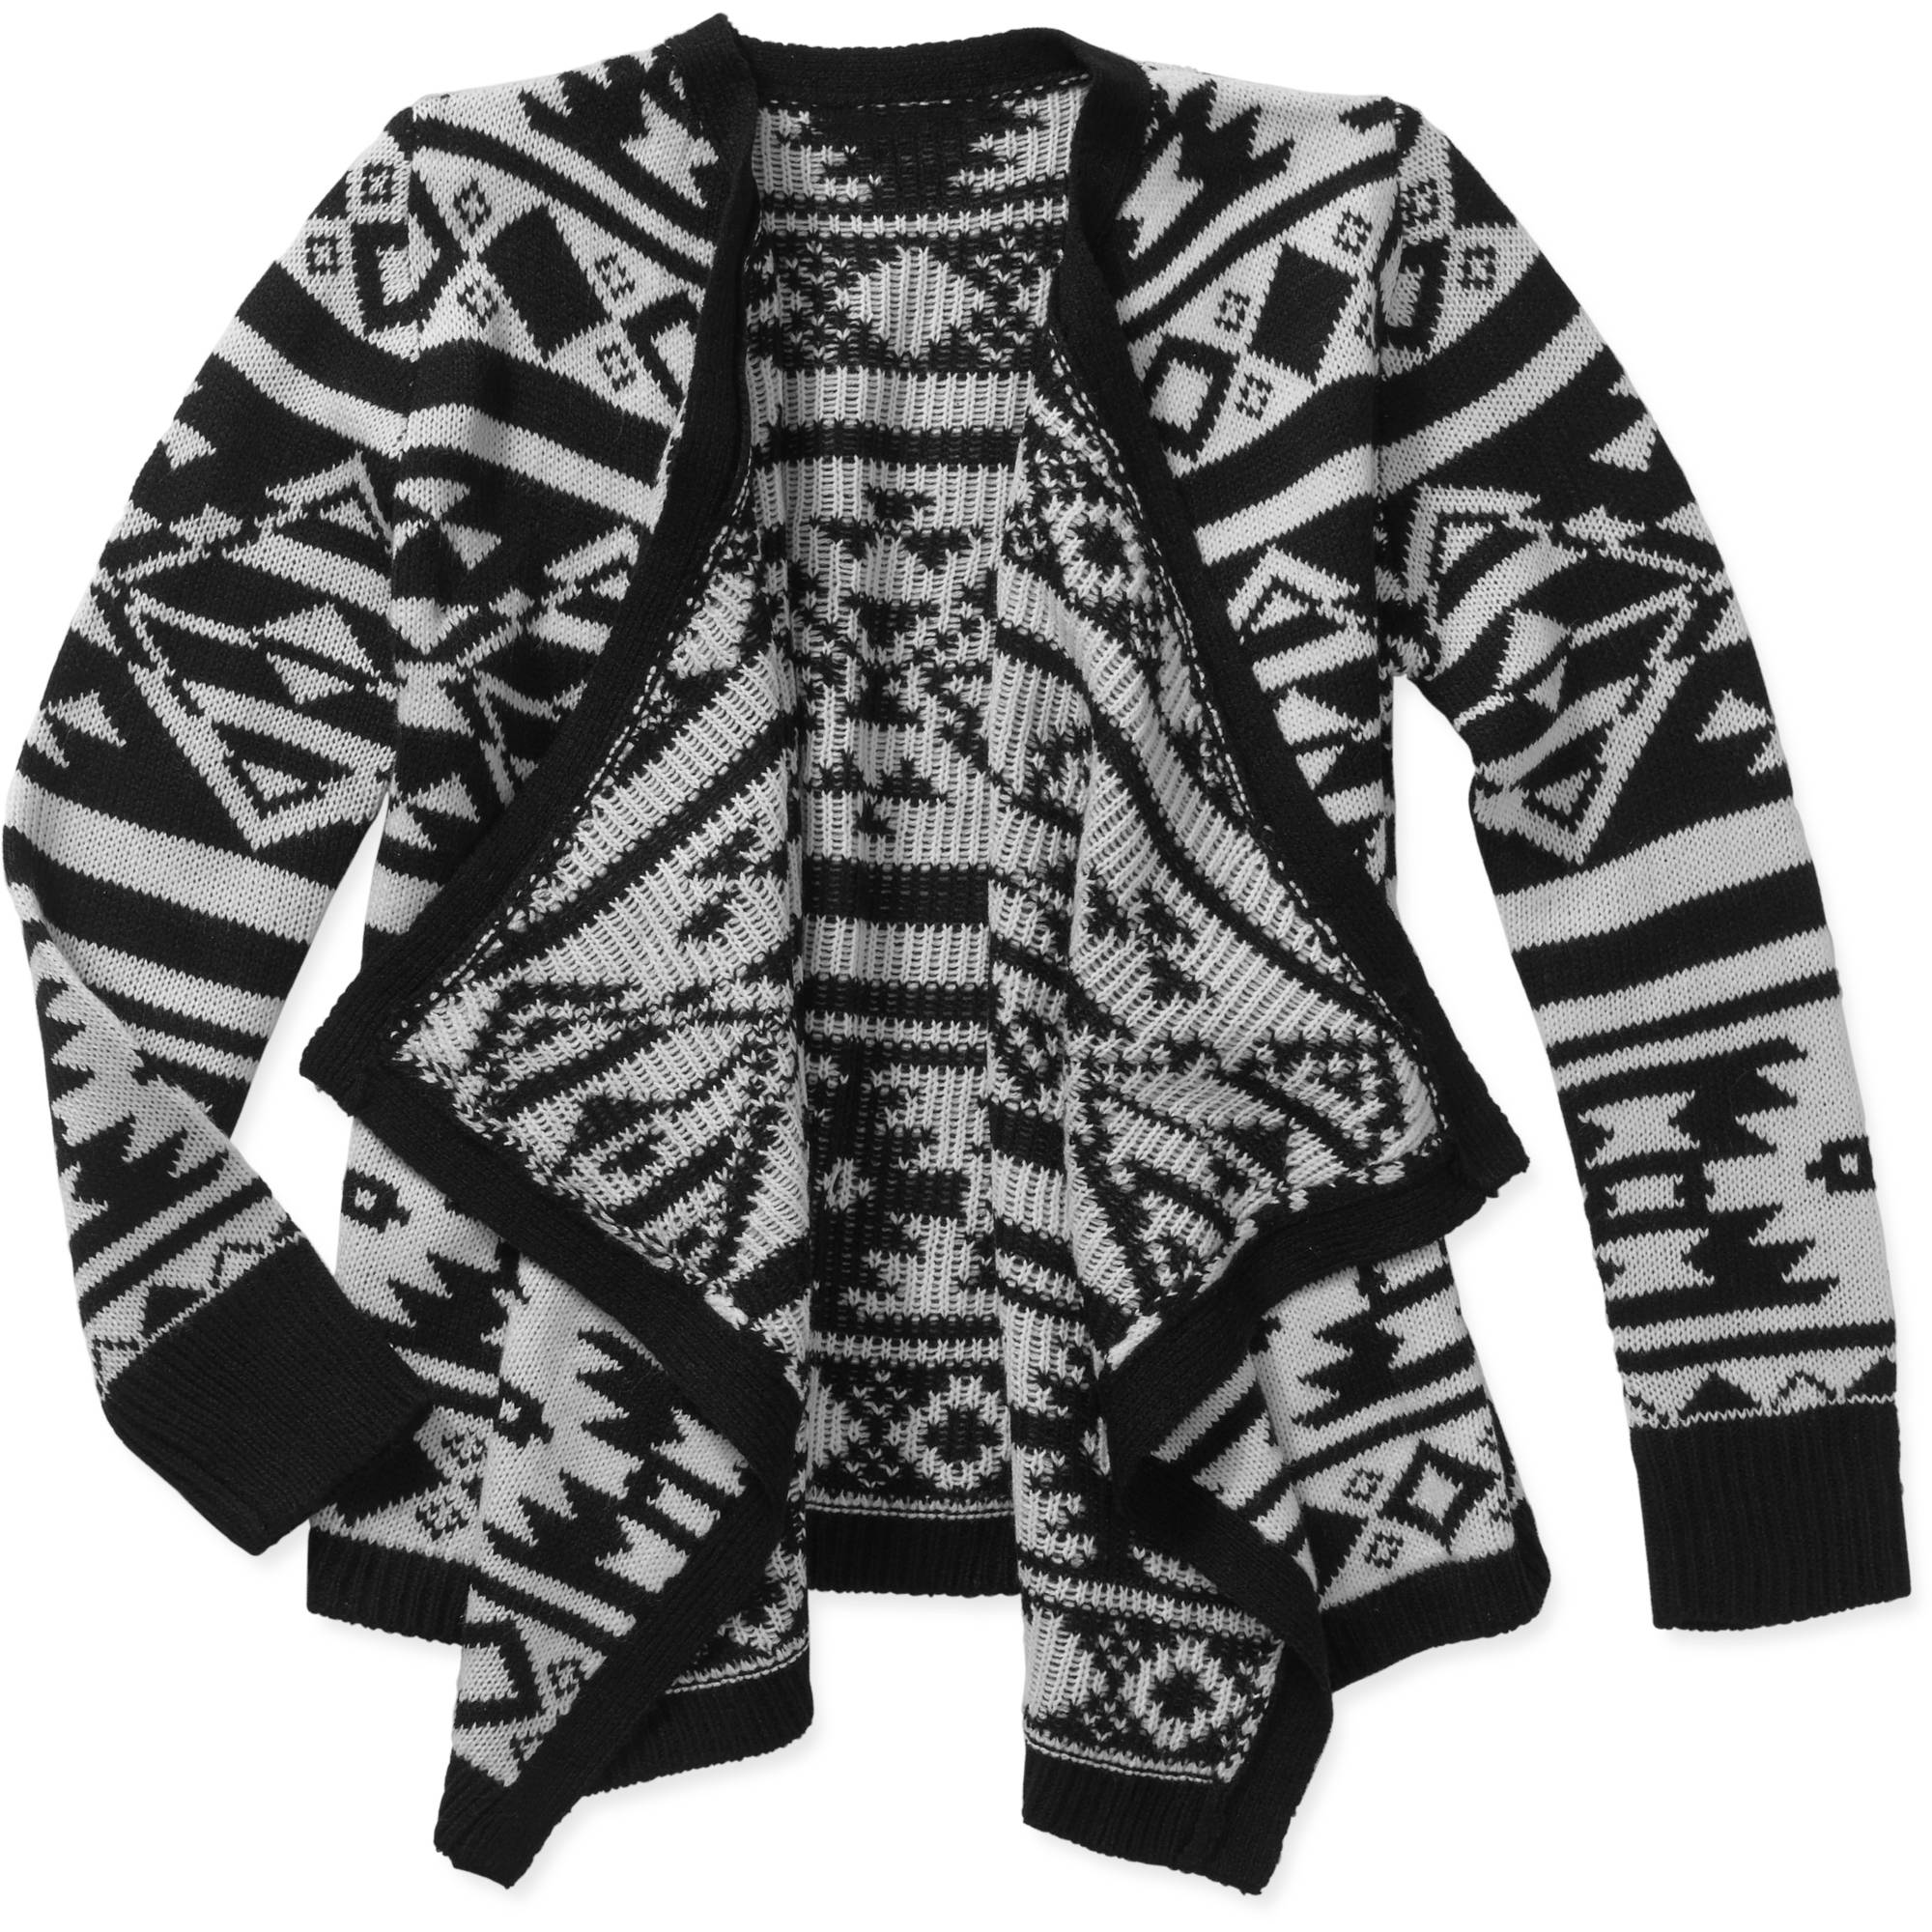 Derek Heart Girls Aztec Printed Cozy